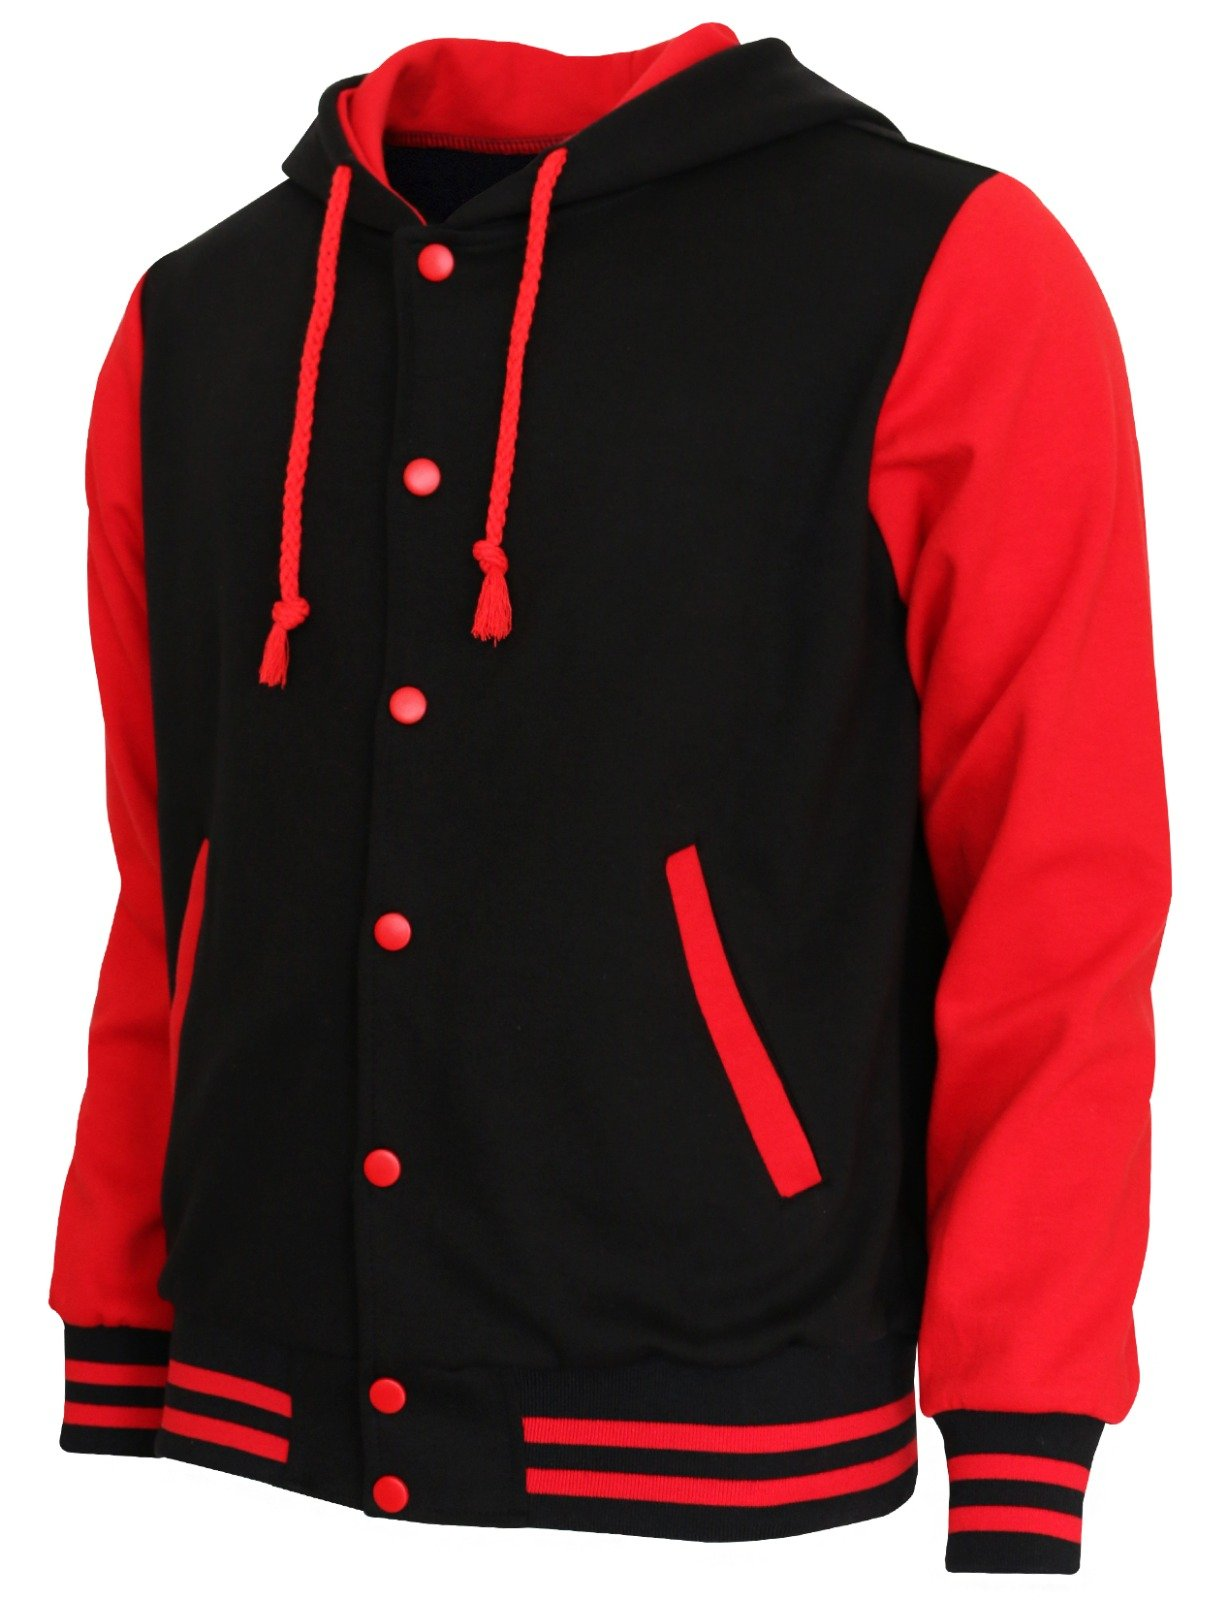 BCPOLO Hoodie Baseball Jacket Varsity Baseball Jacket Cotton Letterman jacket Black-Red-XL by BCPOLO